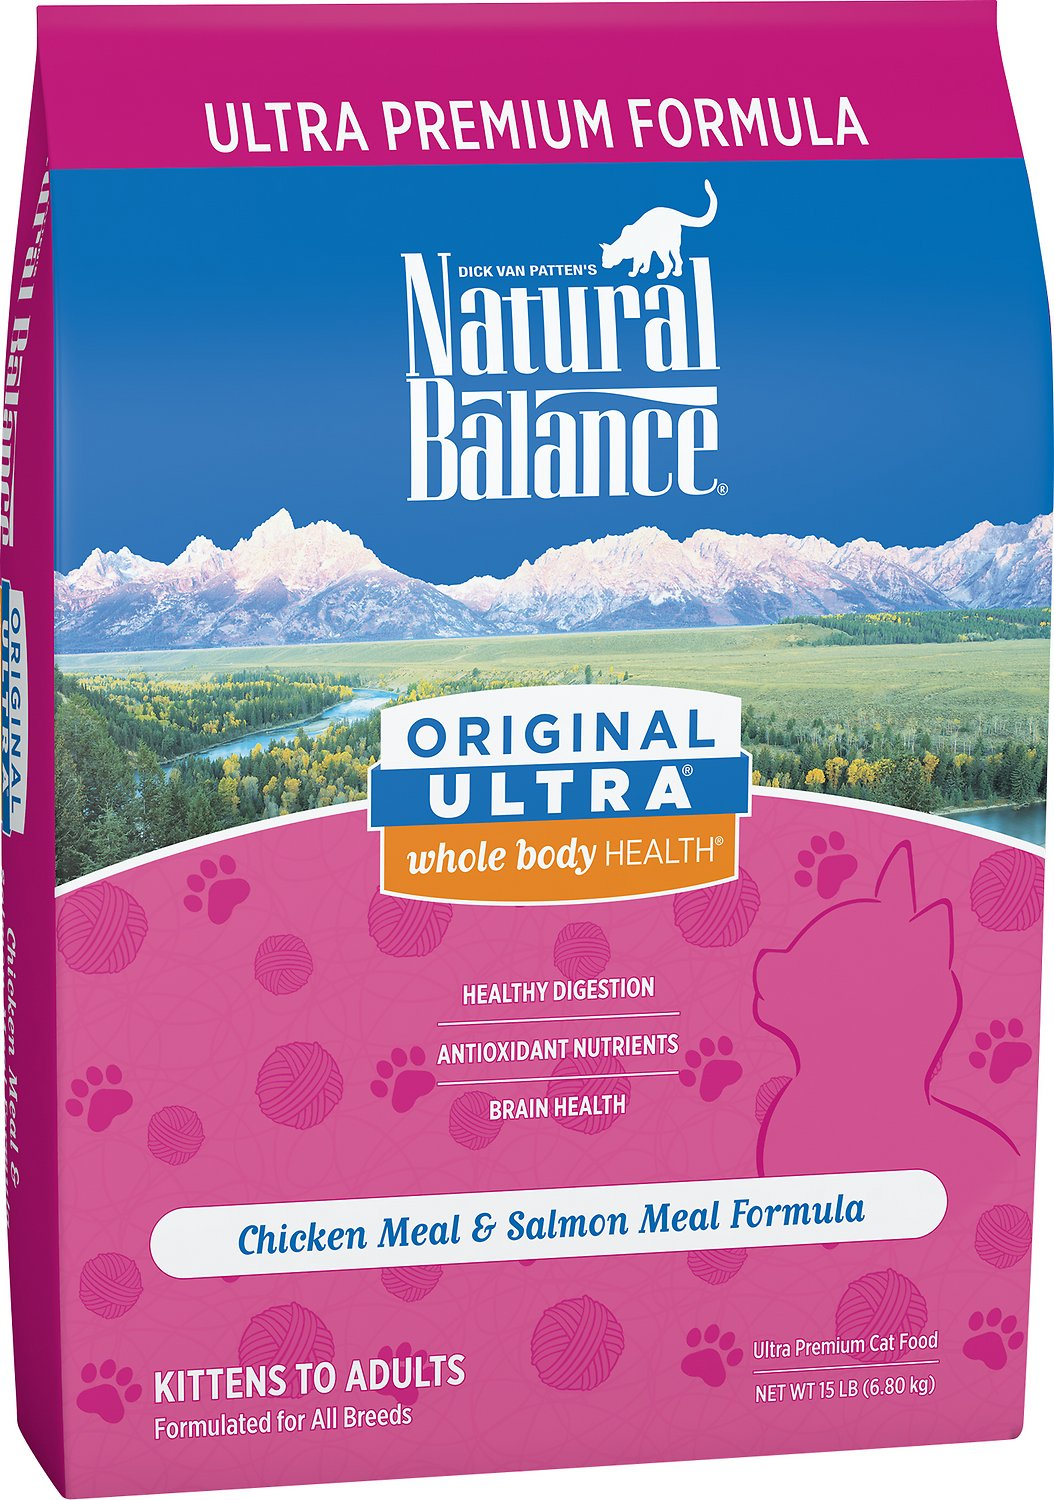 Natural Balance Original Ultra Whole Body Health Chicken Meal & Salmon Meal Formula Dry Cat Food Image